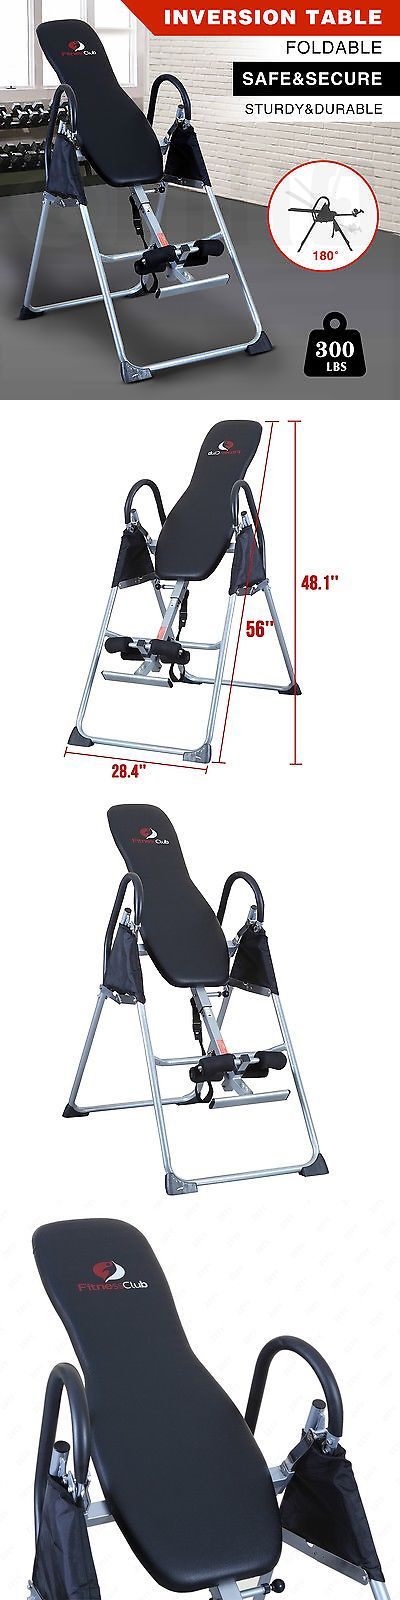 Inversion Tables 112954: Inversion Table Black Fitness Chiropractic Back Pain Relief Reflexology -> BUY IT NOW ONLY: $108.9 on eBay!